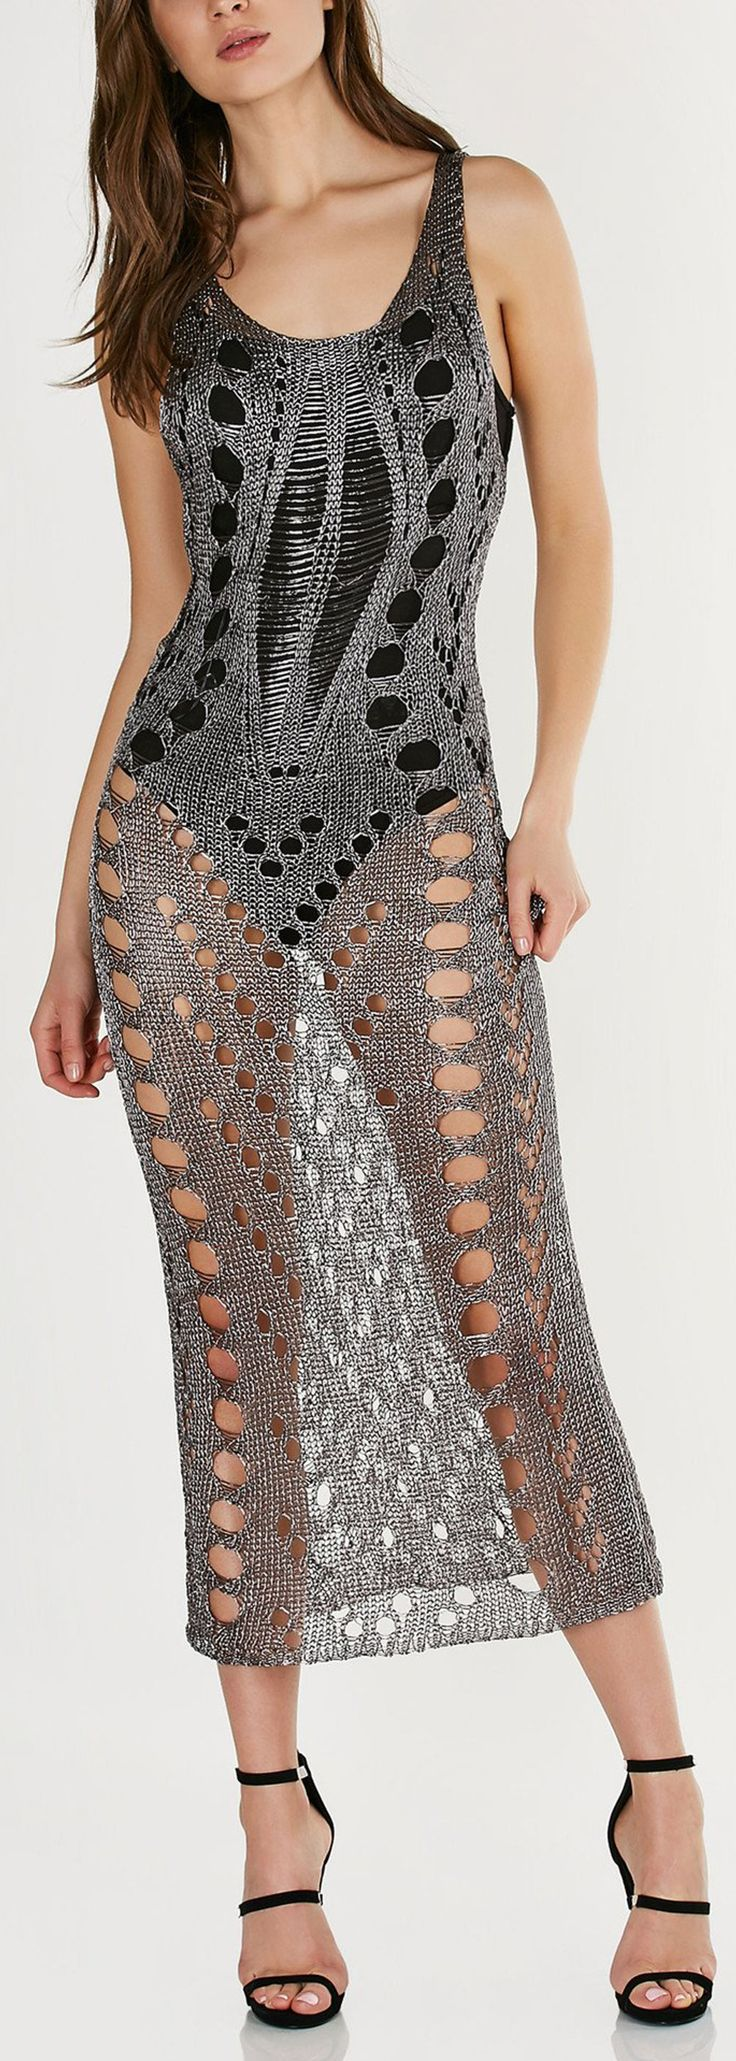 Sleeveless U-neck maxi dress with metallic finish. Heavy distressing with shredded holes throughout with straight hem all around. - Viscose-Metallic blend - Imported - Model is wearing size S - Runs t